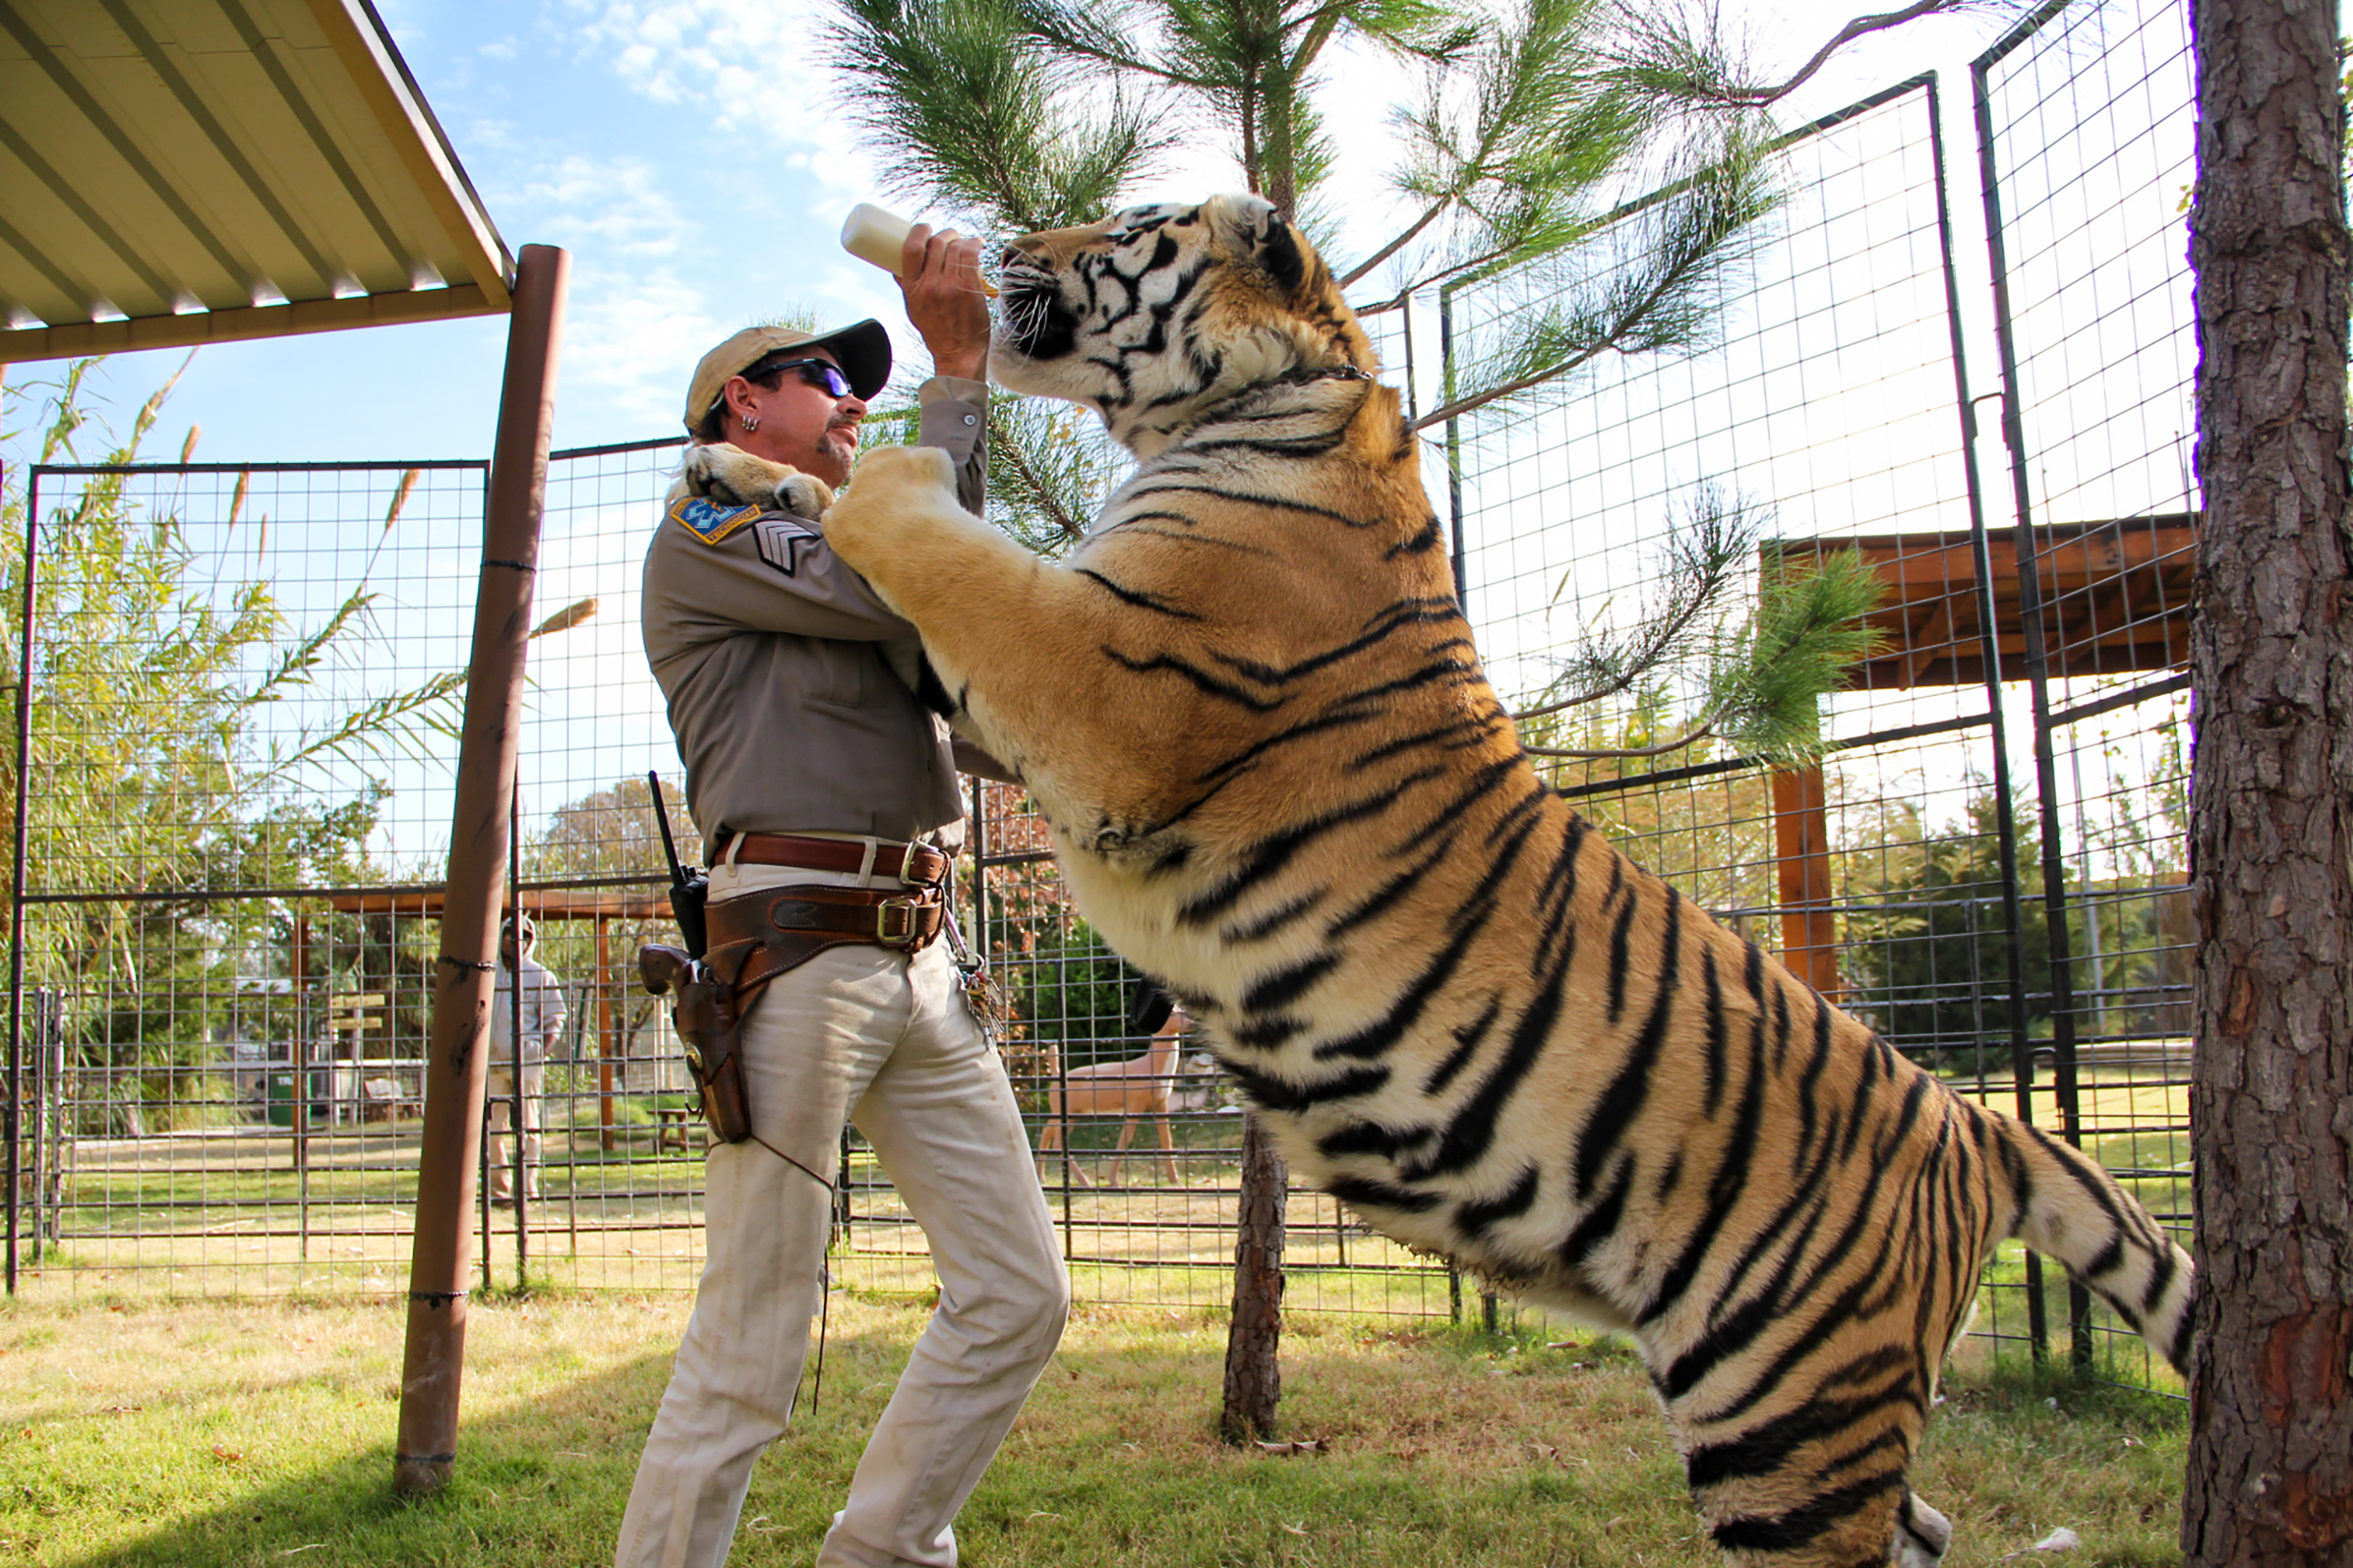 A man feeds a tiger.